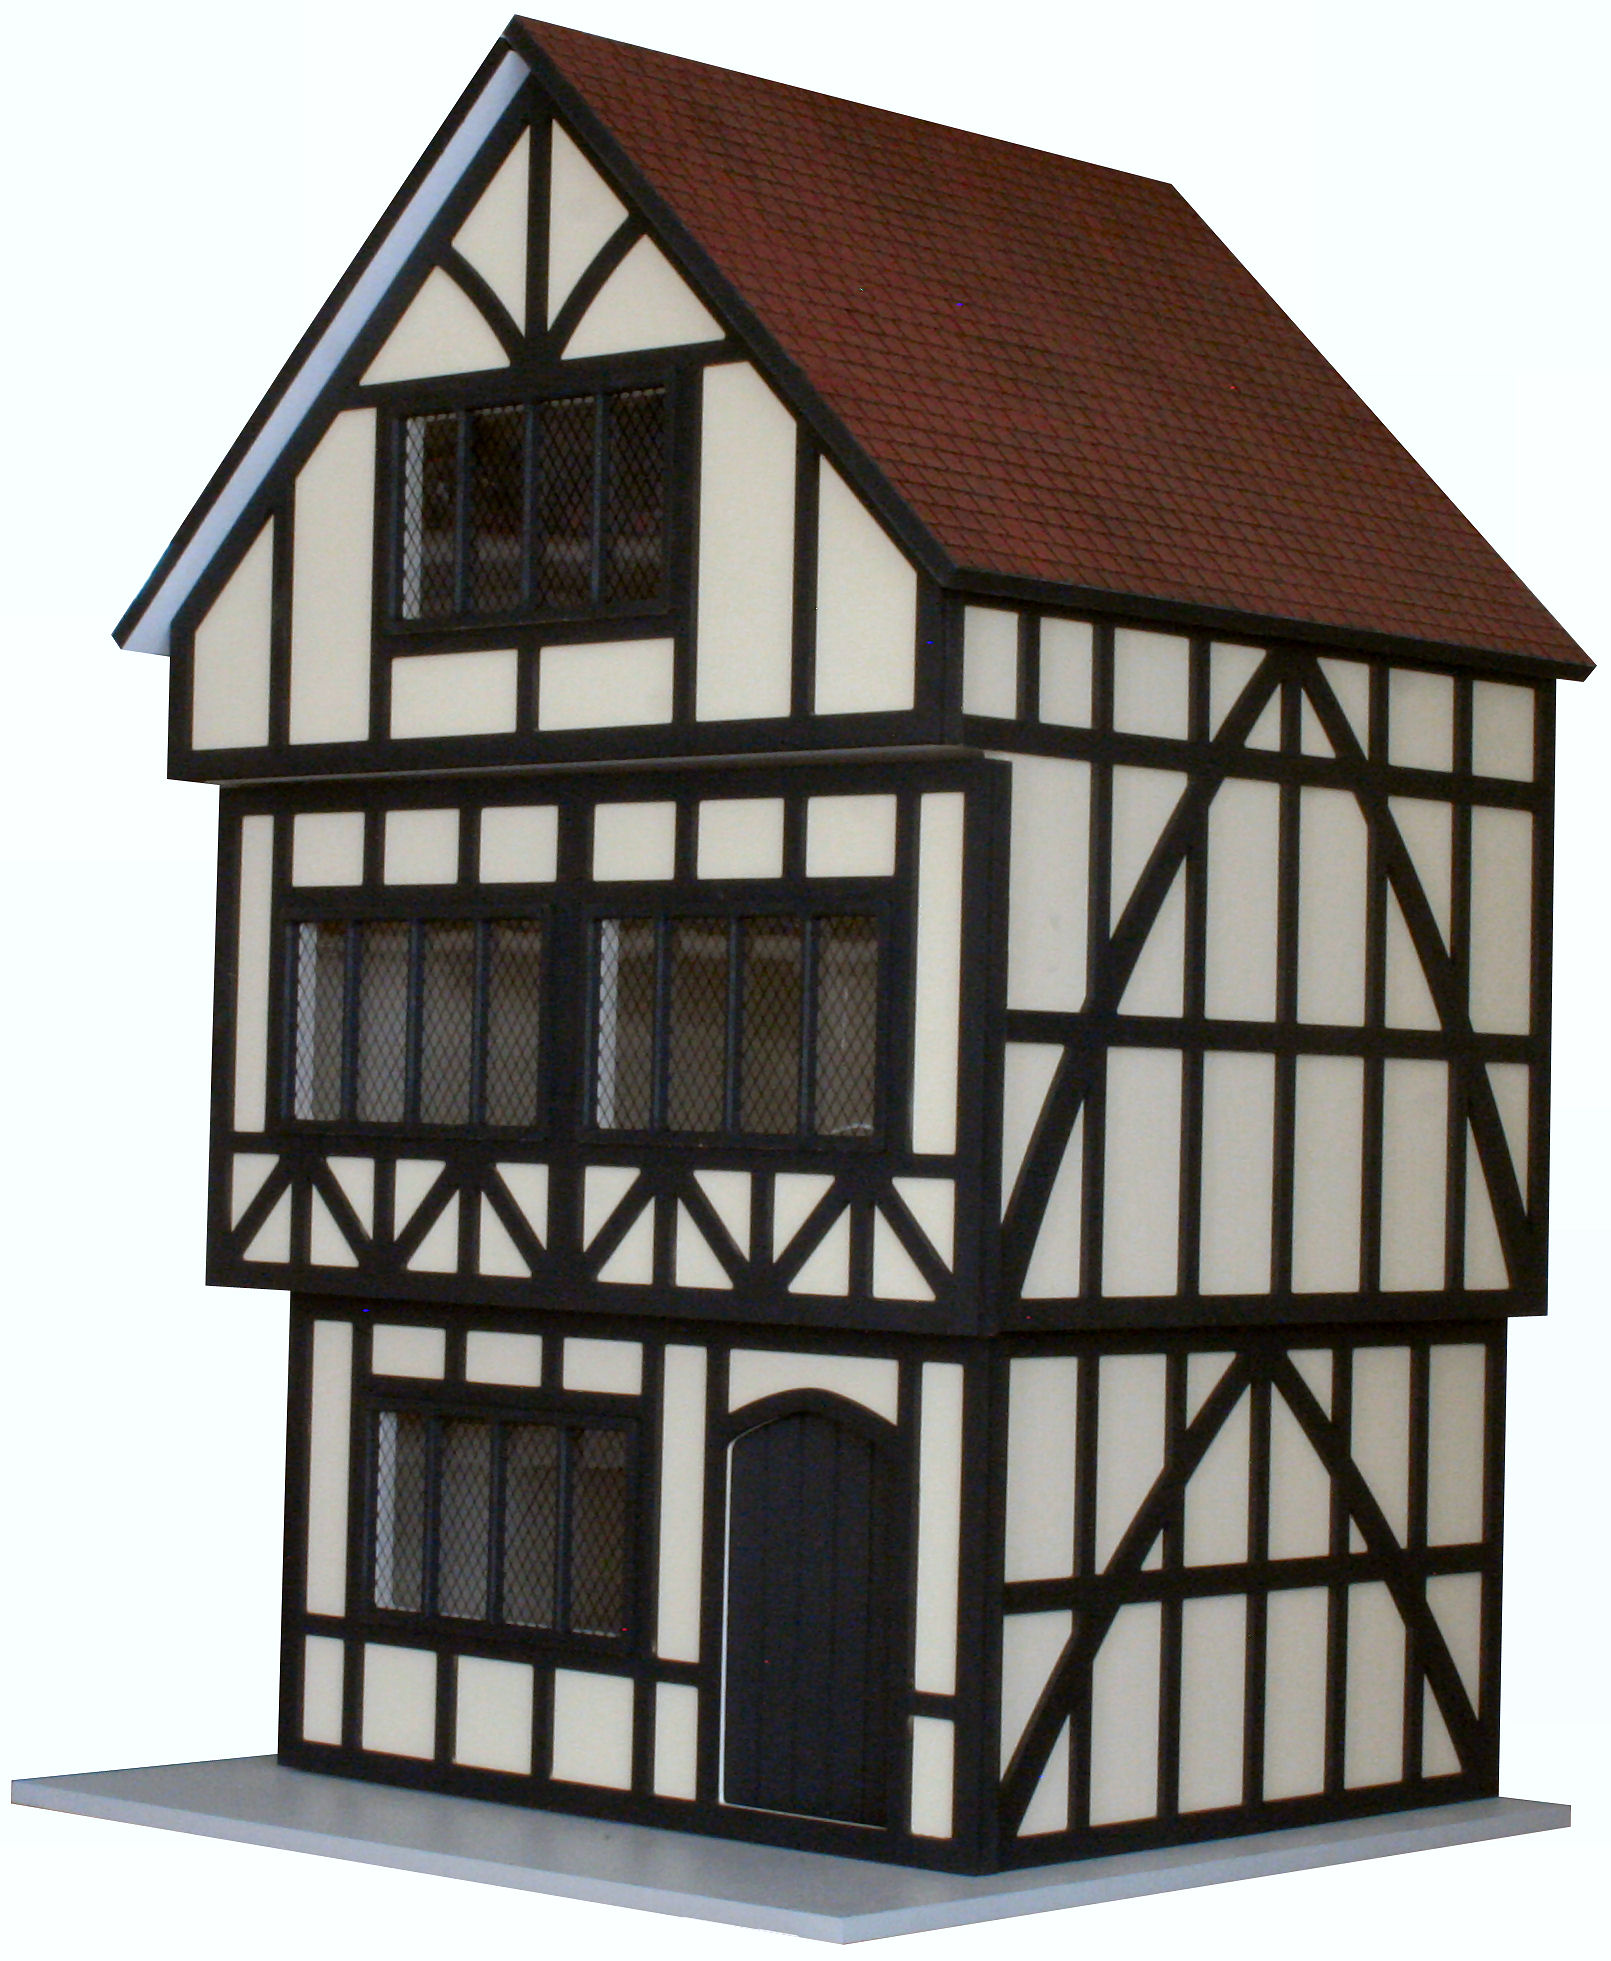 Tudor style house clipart clipground - What makes a house a tudor ...